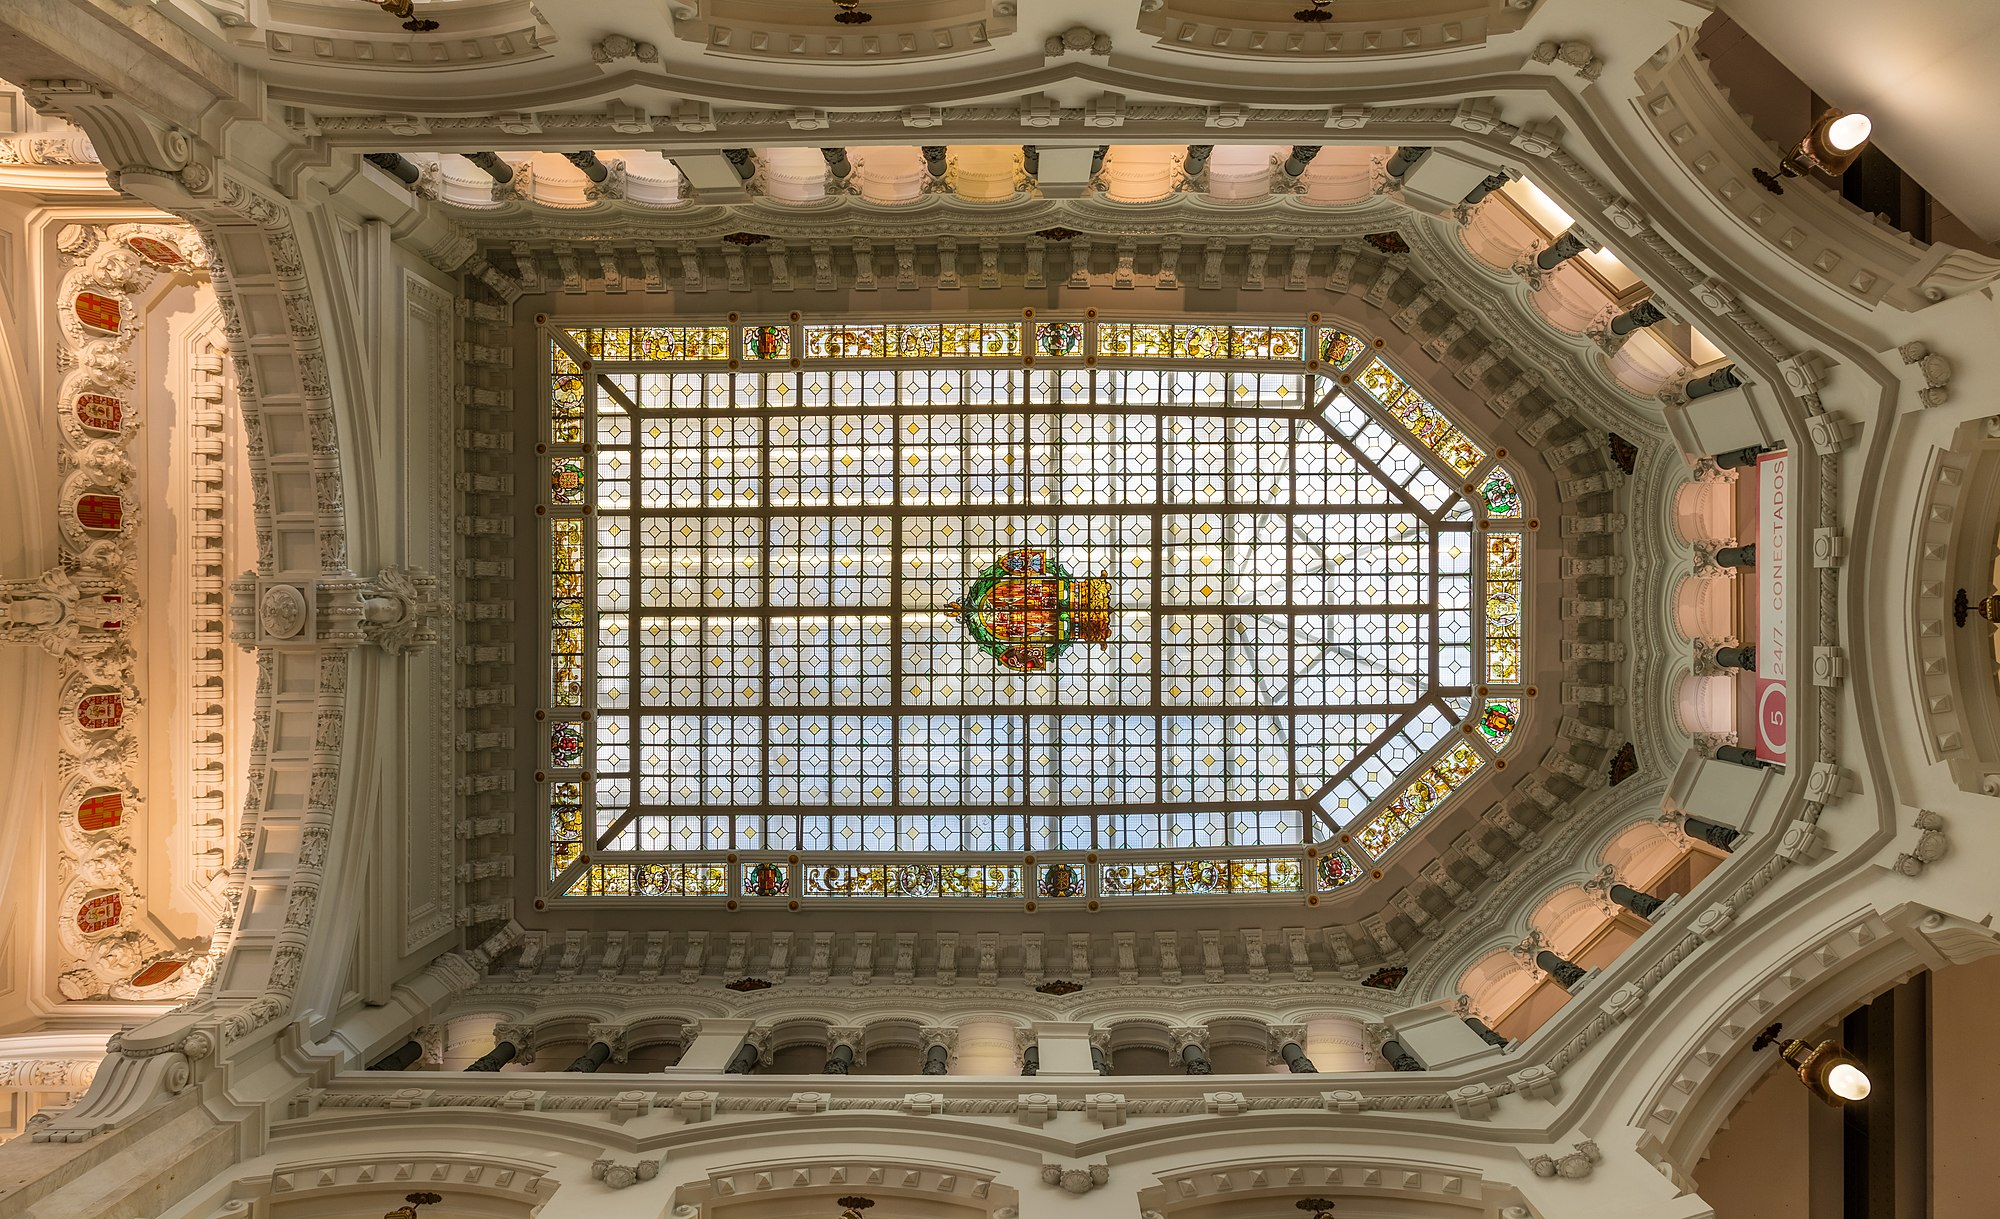 Skylight in the Cybele Palace or Palace of Communication, located on the Plaza de Cibeles, Madrid, Spain. The building, one of the landmarks of Spain's capital, was inaugurated in 1919 as headquarters of the Spanish postal and telecommunications service (Correos). The building was designed by Antonio Palacios and Joaquín Otamendi. Today the building is seat of the City Council.